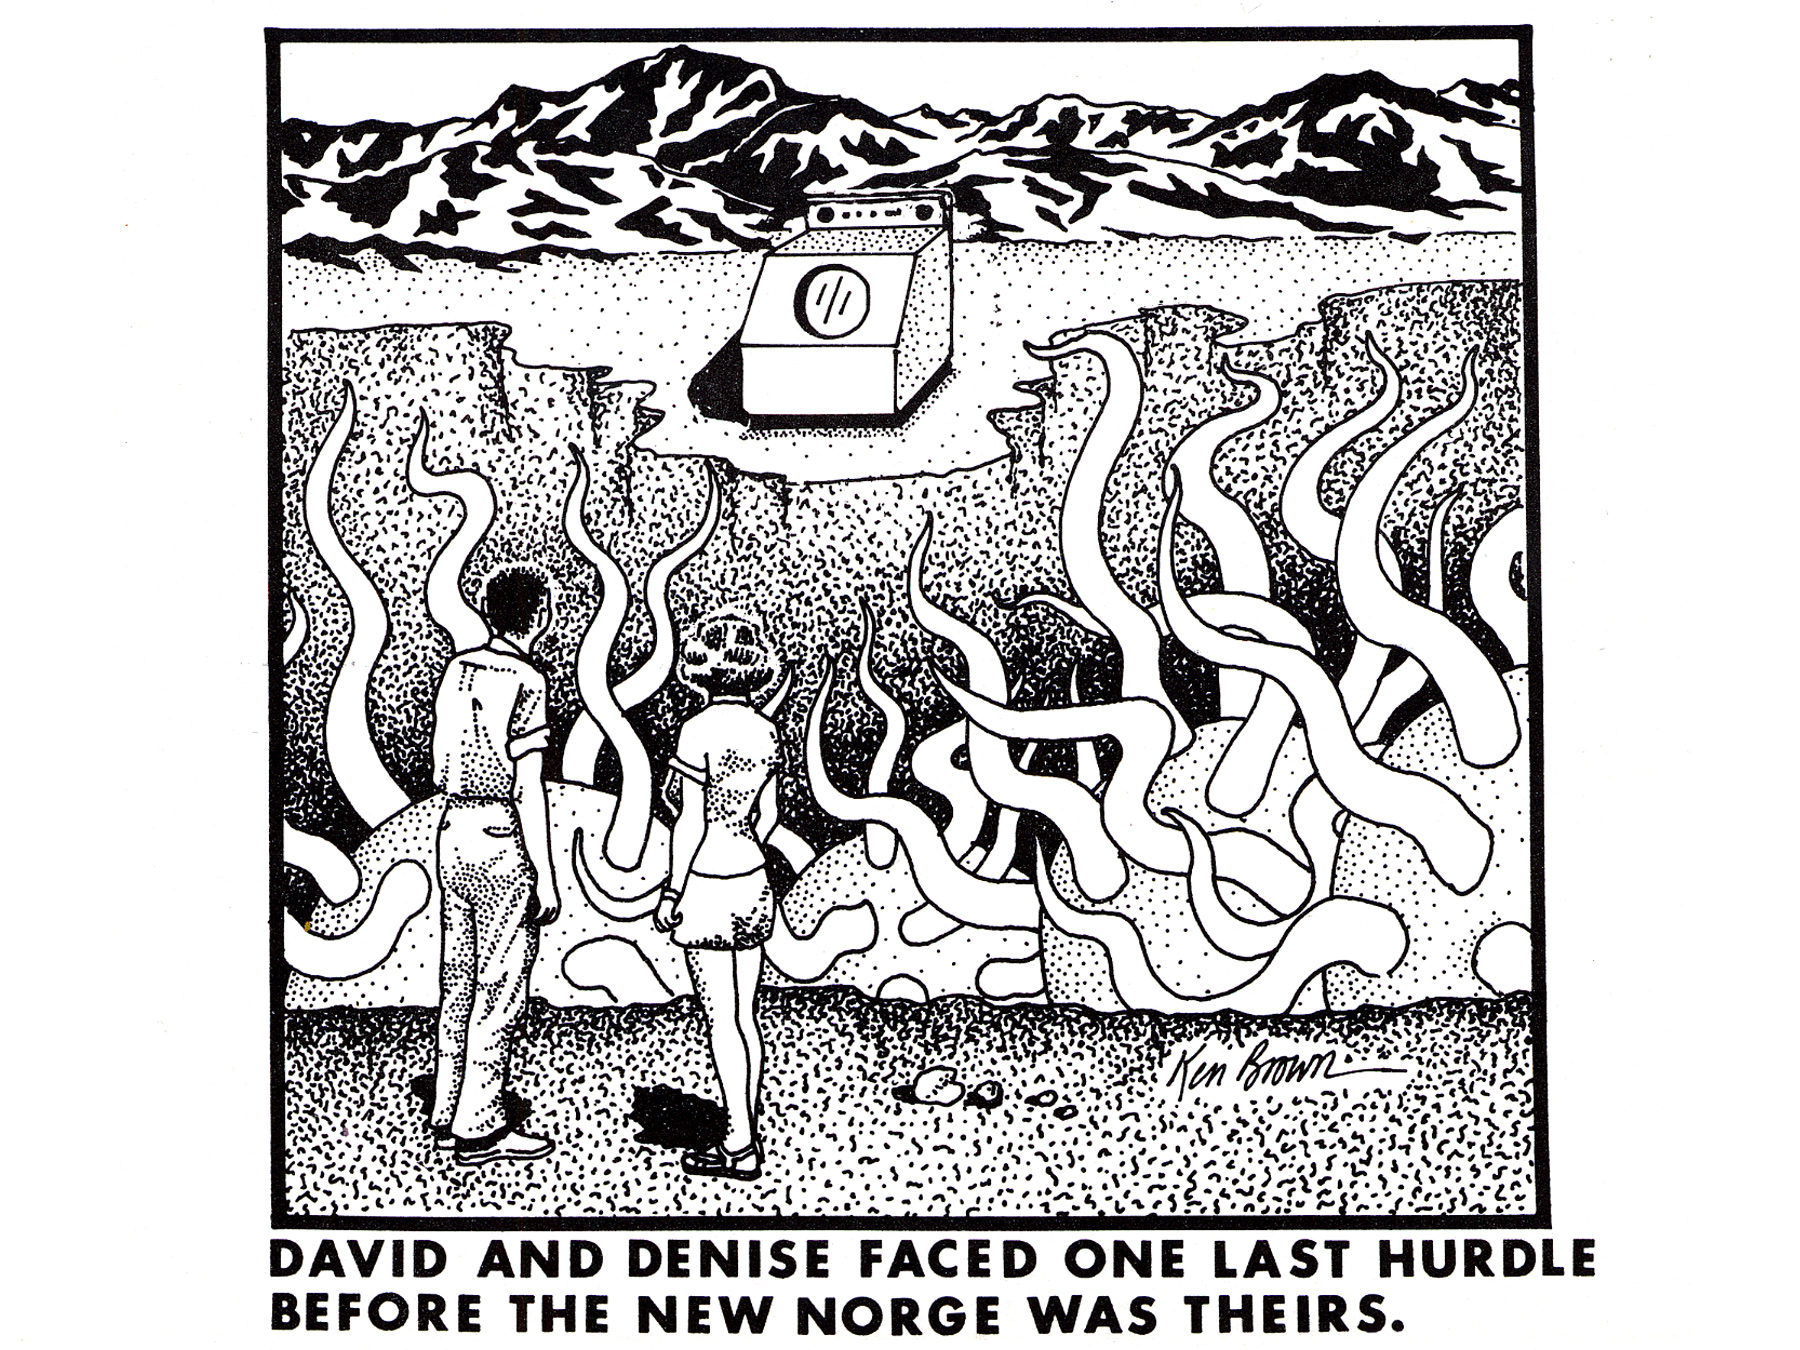 PC-CARTOON B_W-DAVID&DENISE.jpg